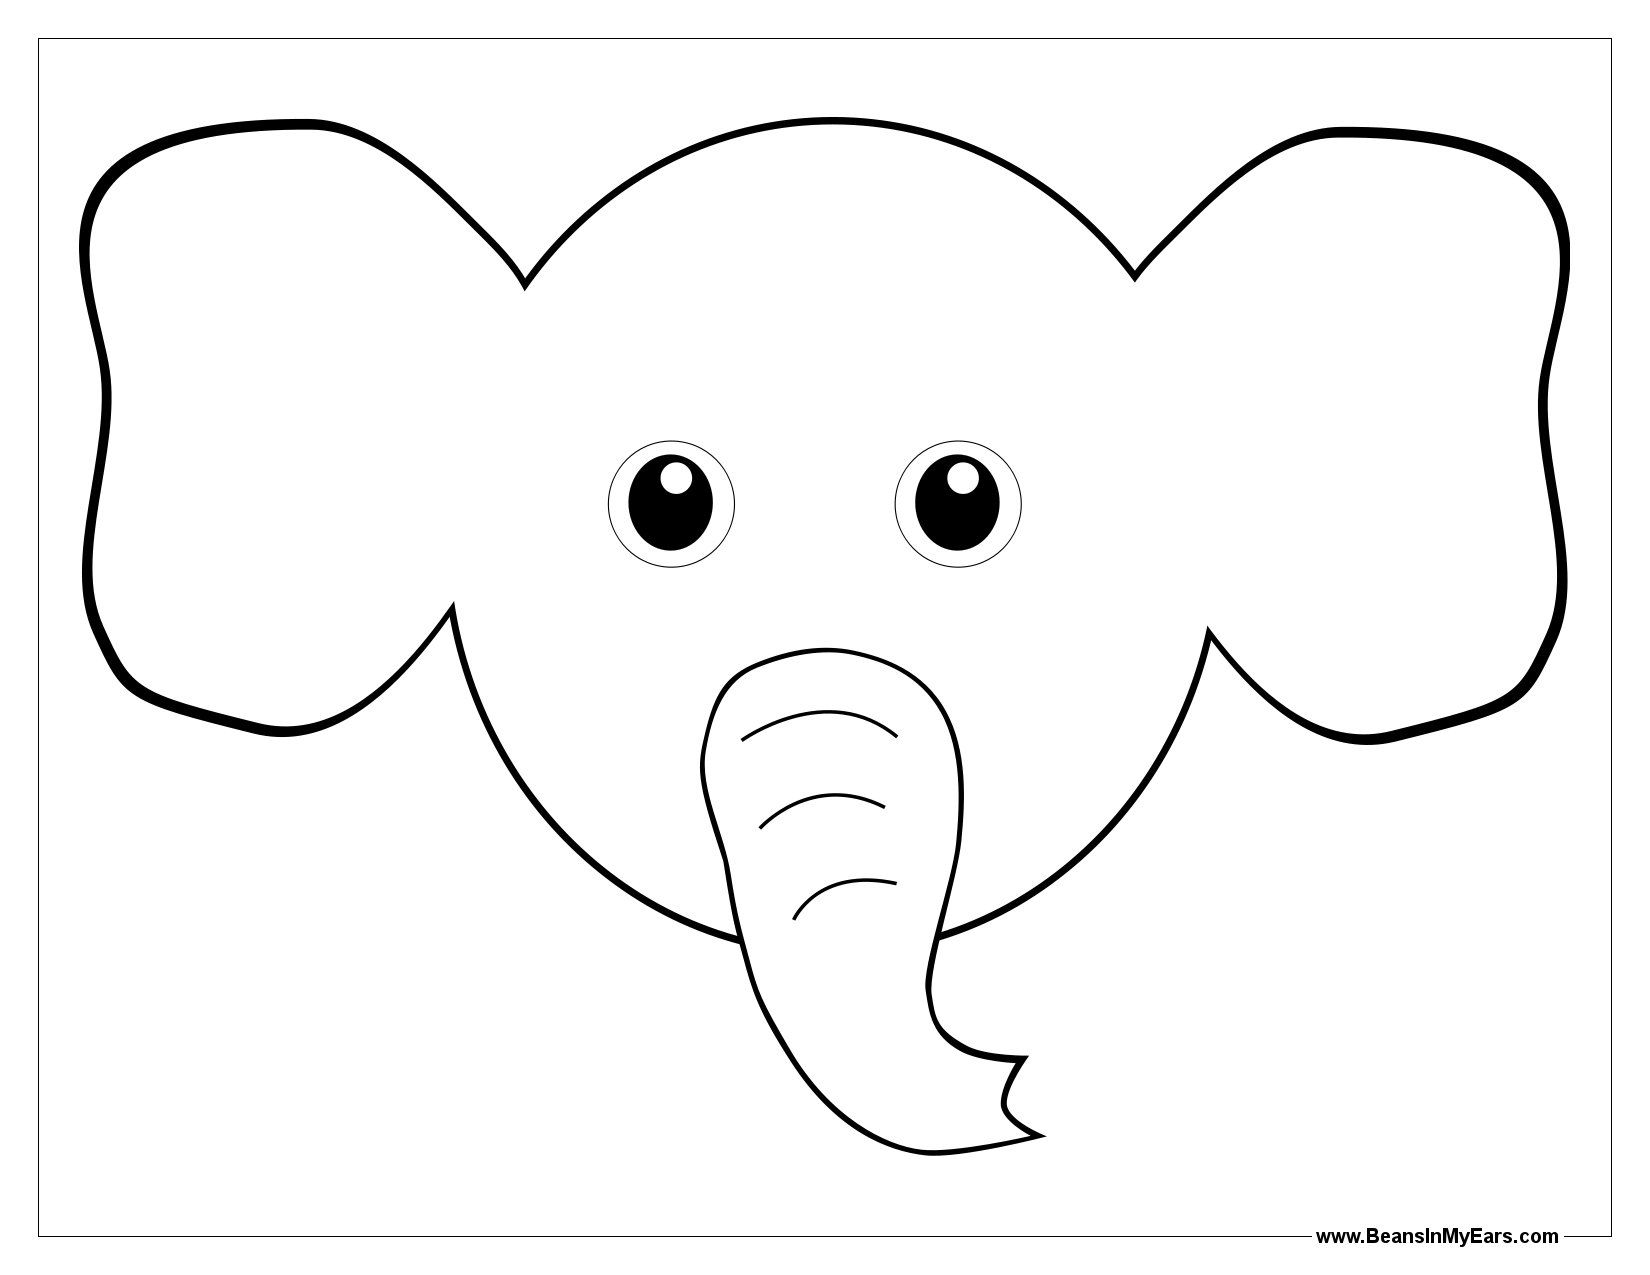 Elephant head coloring page Deer coloring pages